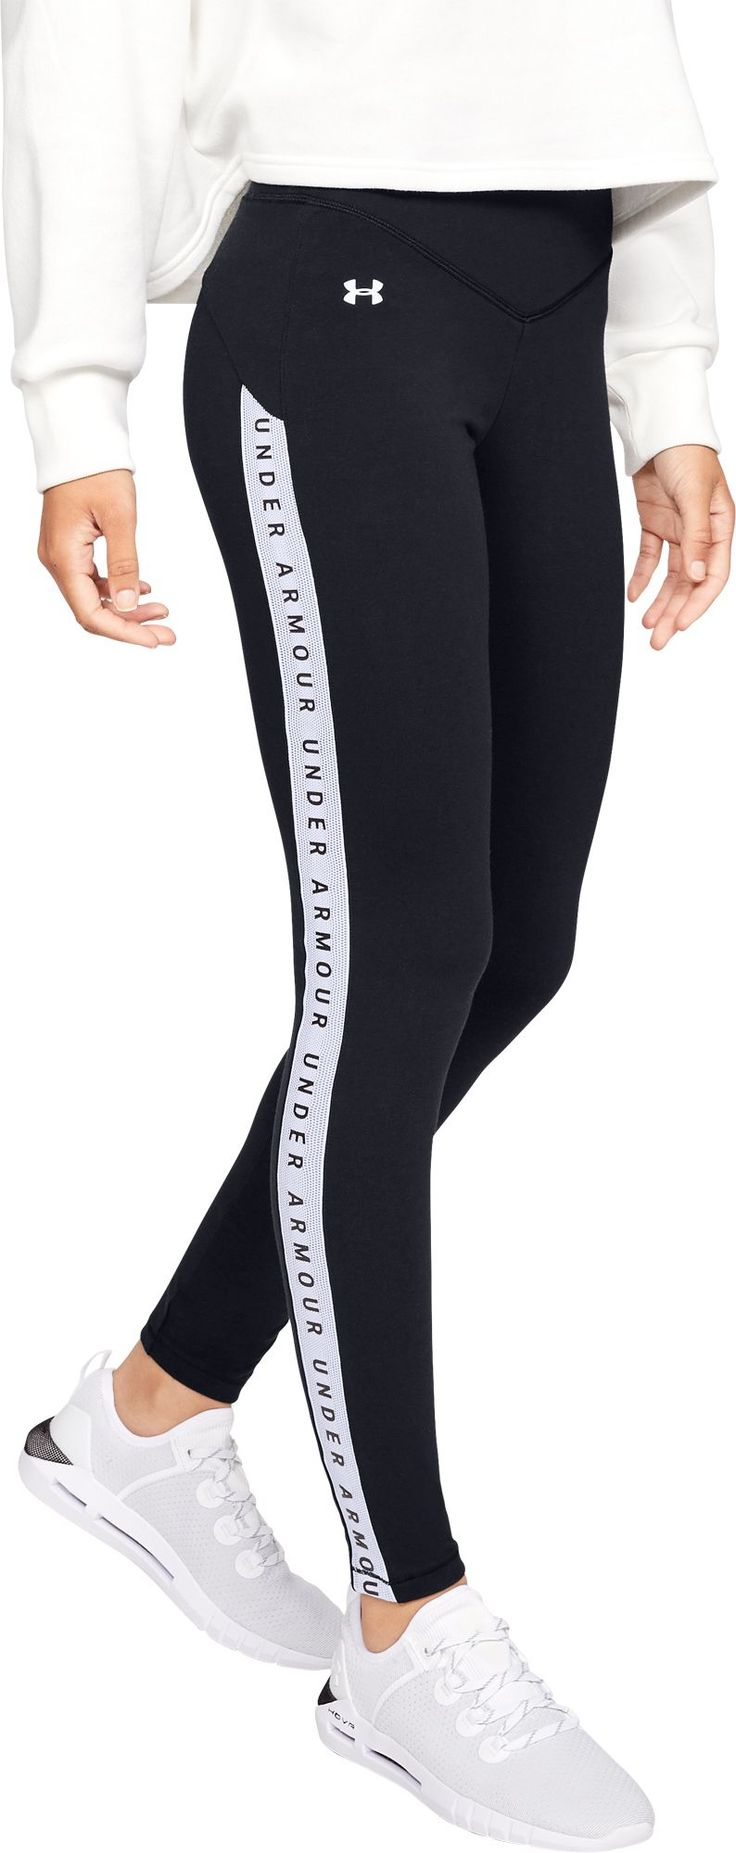 Under Armour Women's Taped Favorite Leggings, Size: XS, Black 2